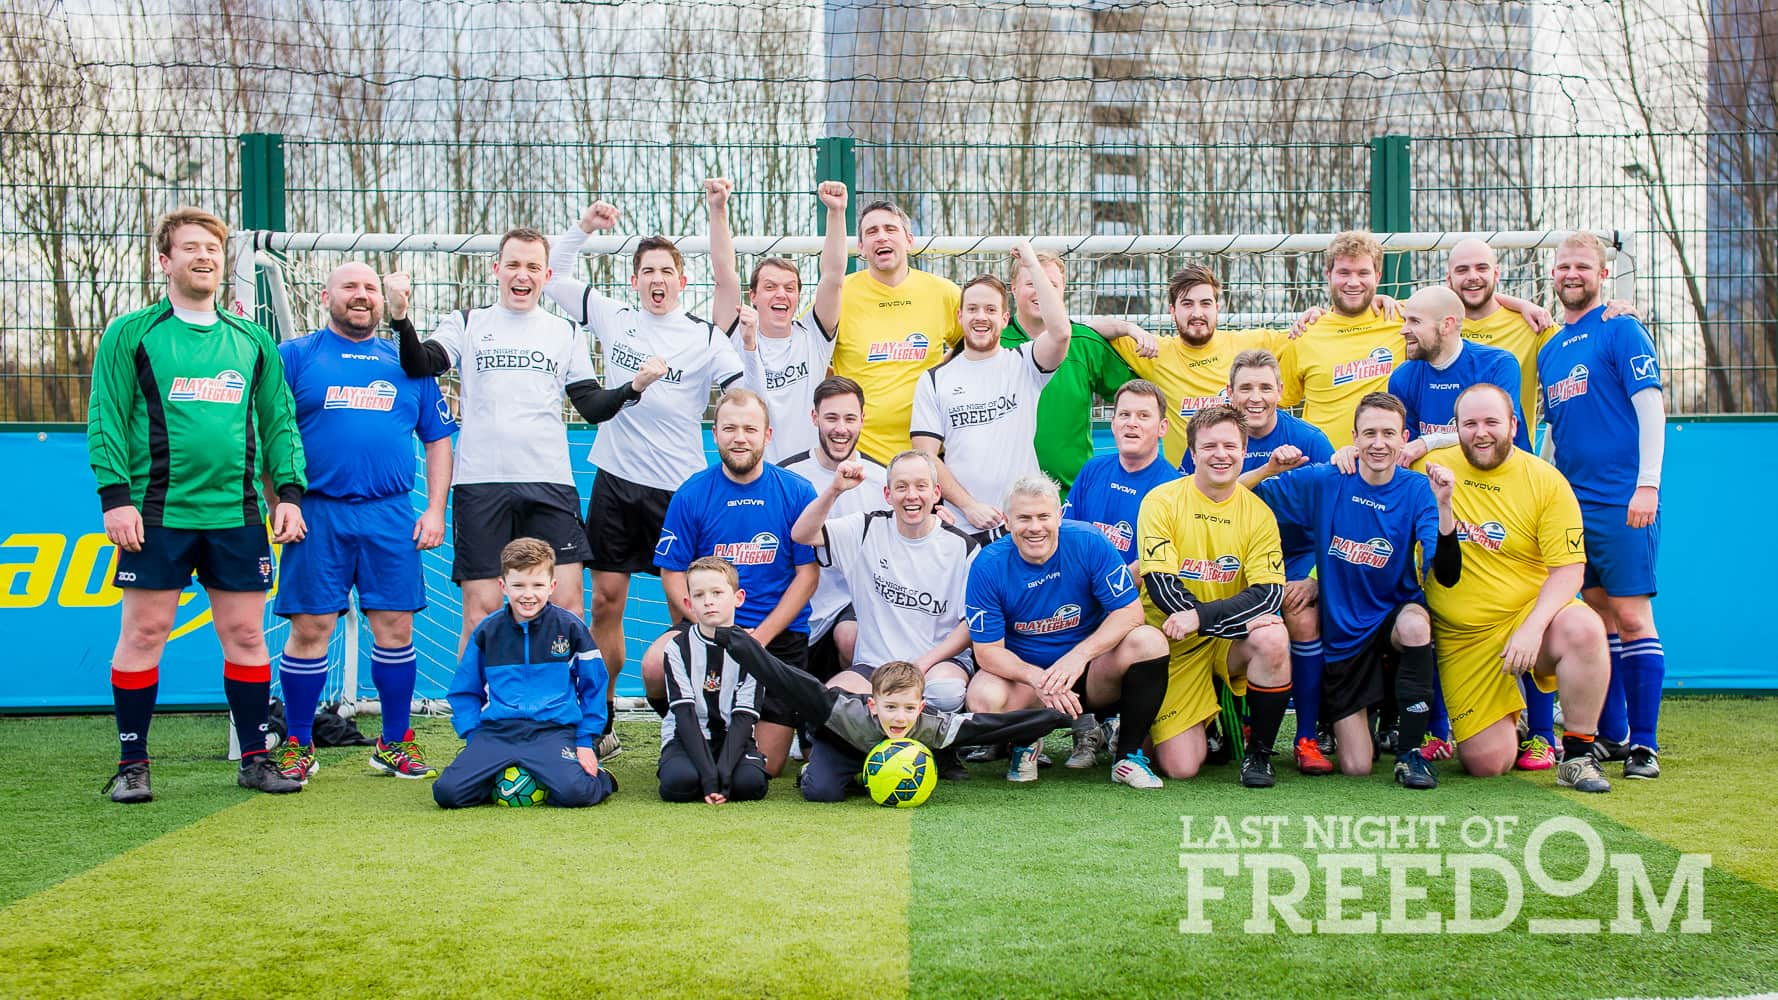 All players in white, blue and yellow kit gather in the goal area for a group photo with Rob Lee